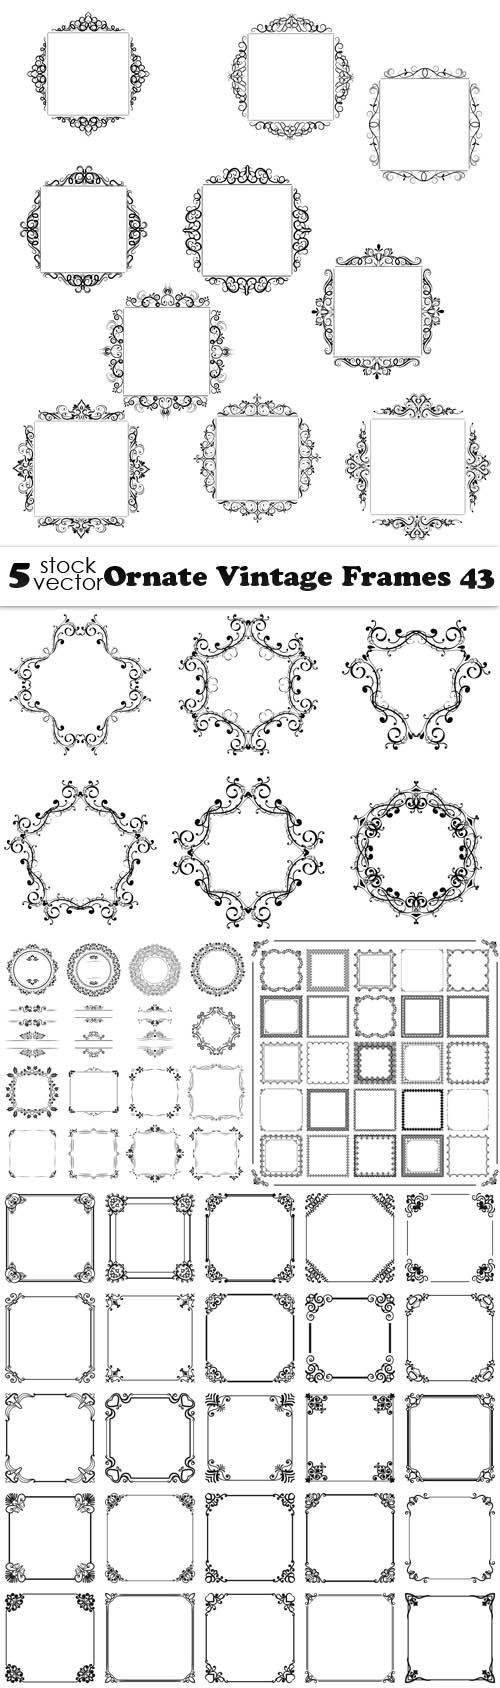 Vectors - Ornate Vintage Frames 43